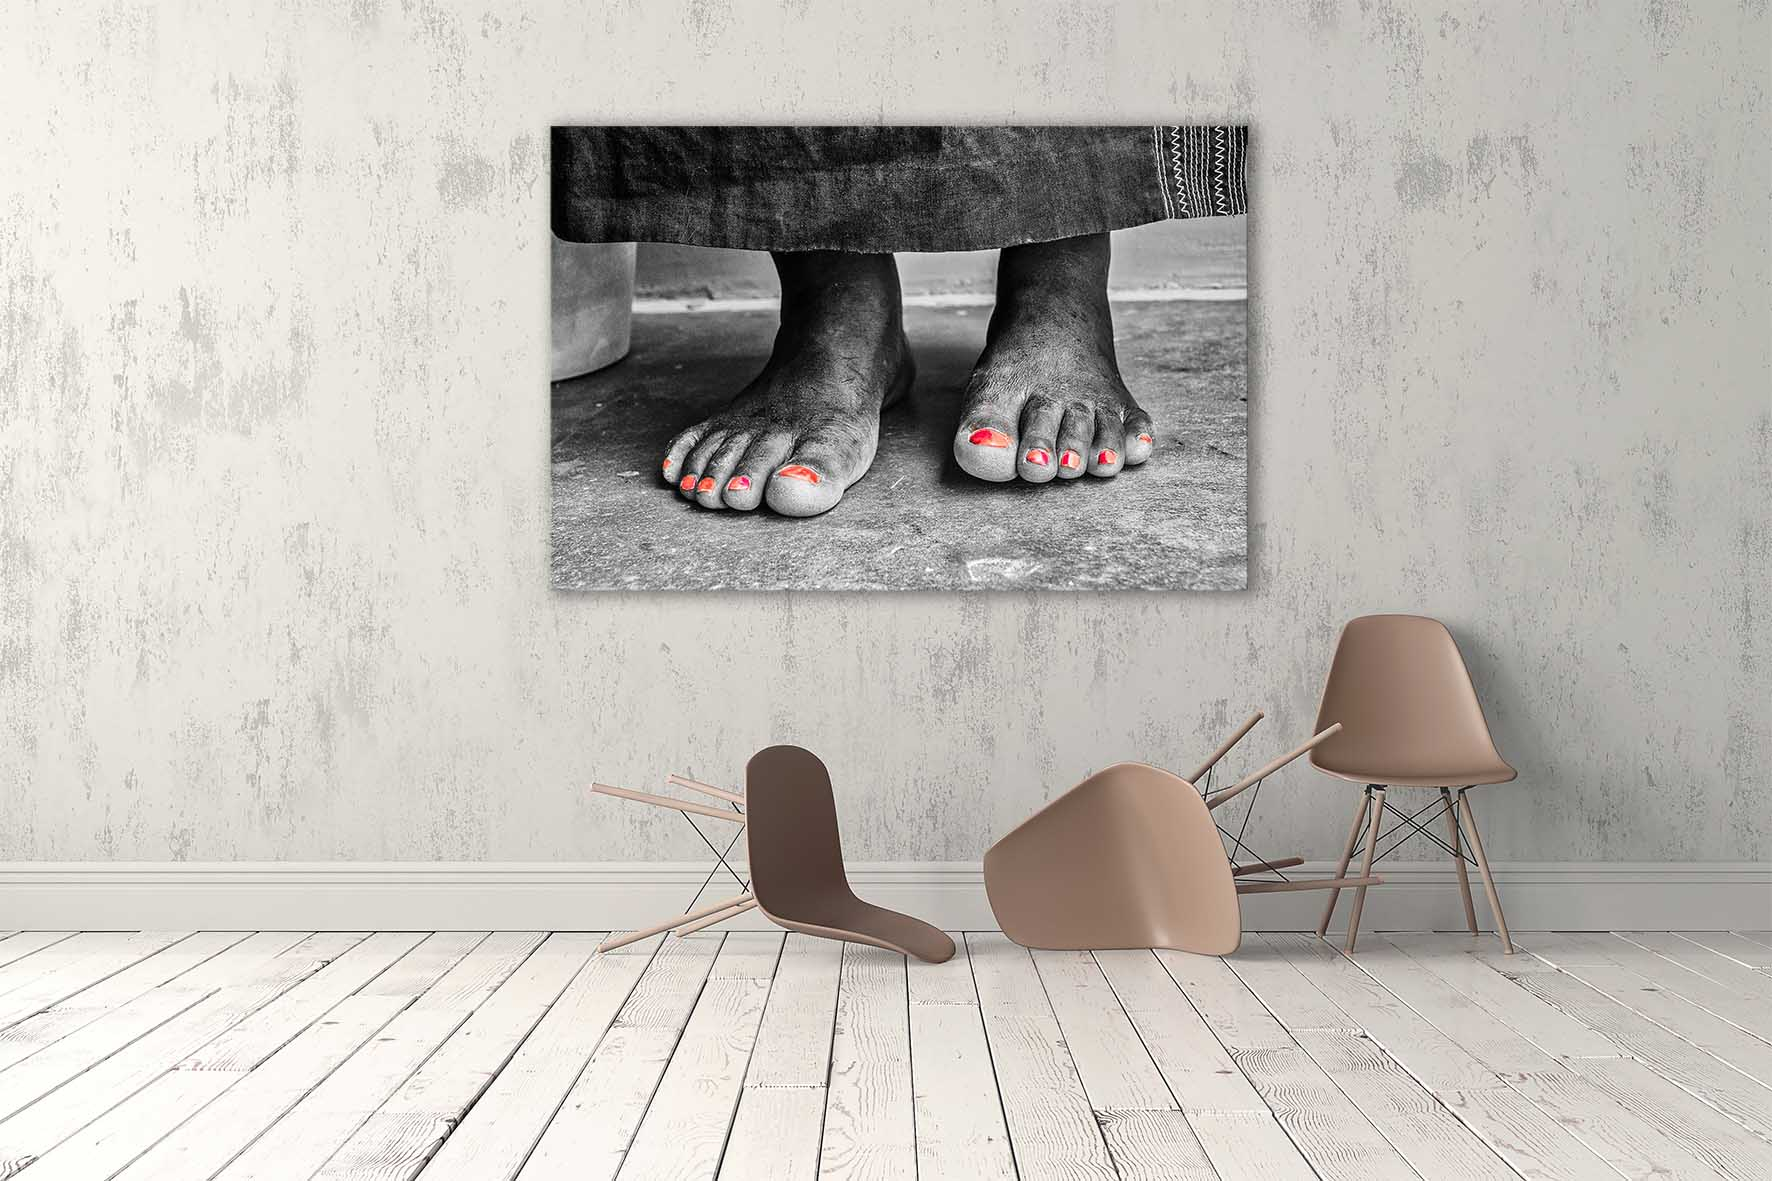 African Feet | Special edition Art Print on Aluminium